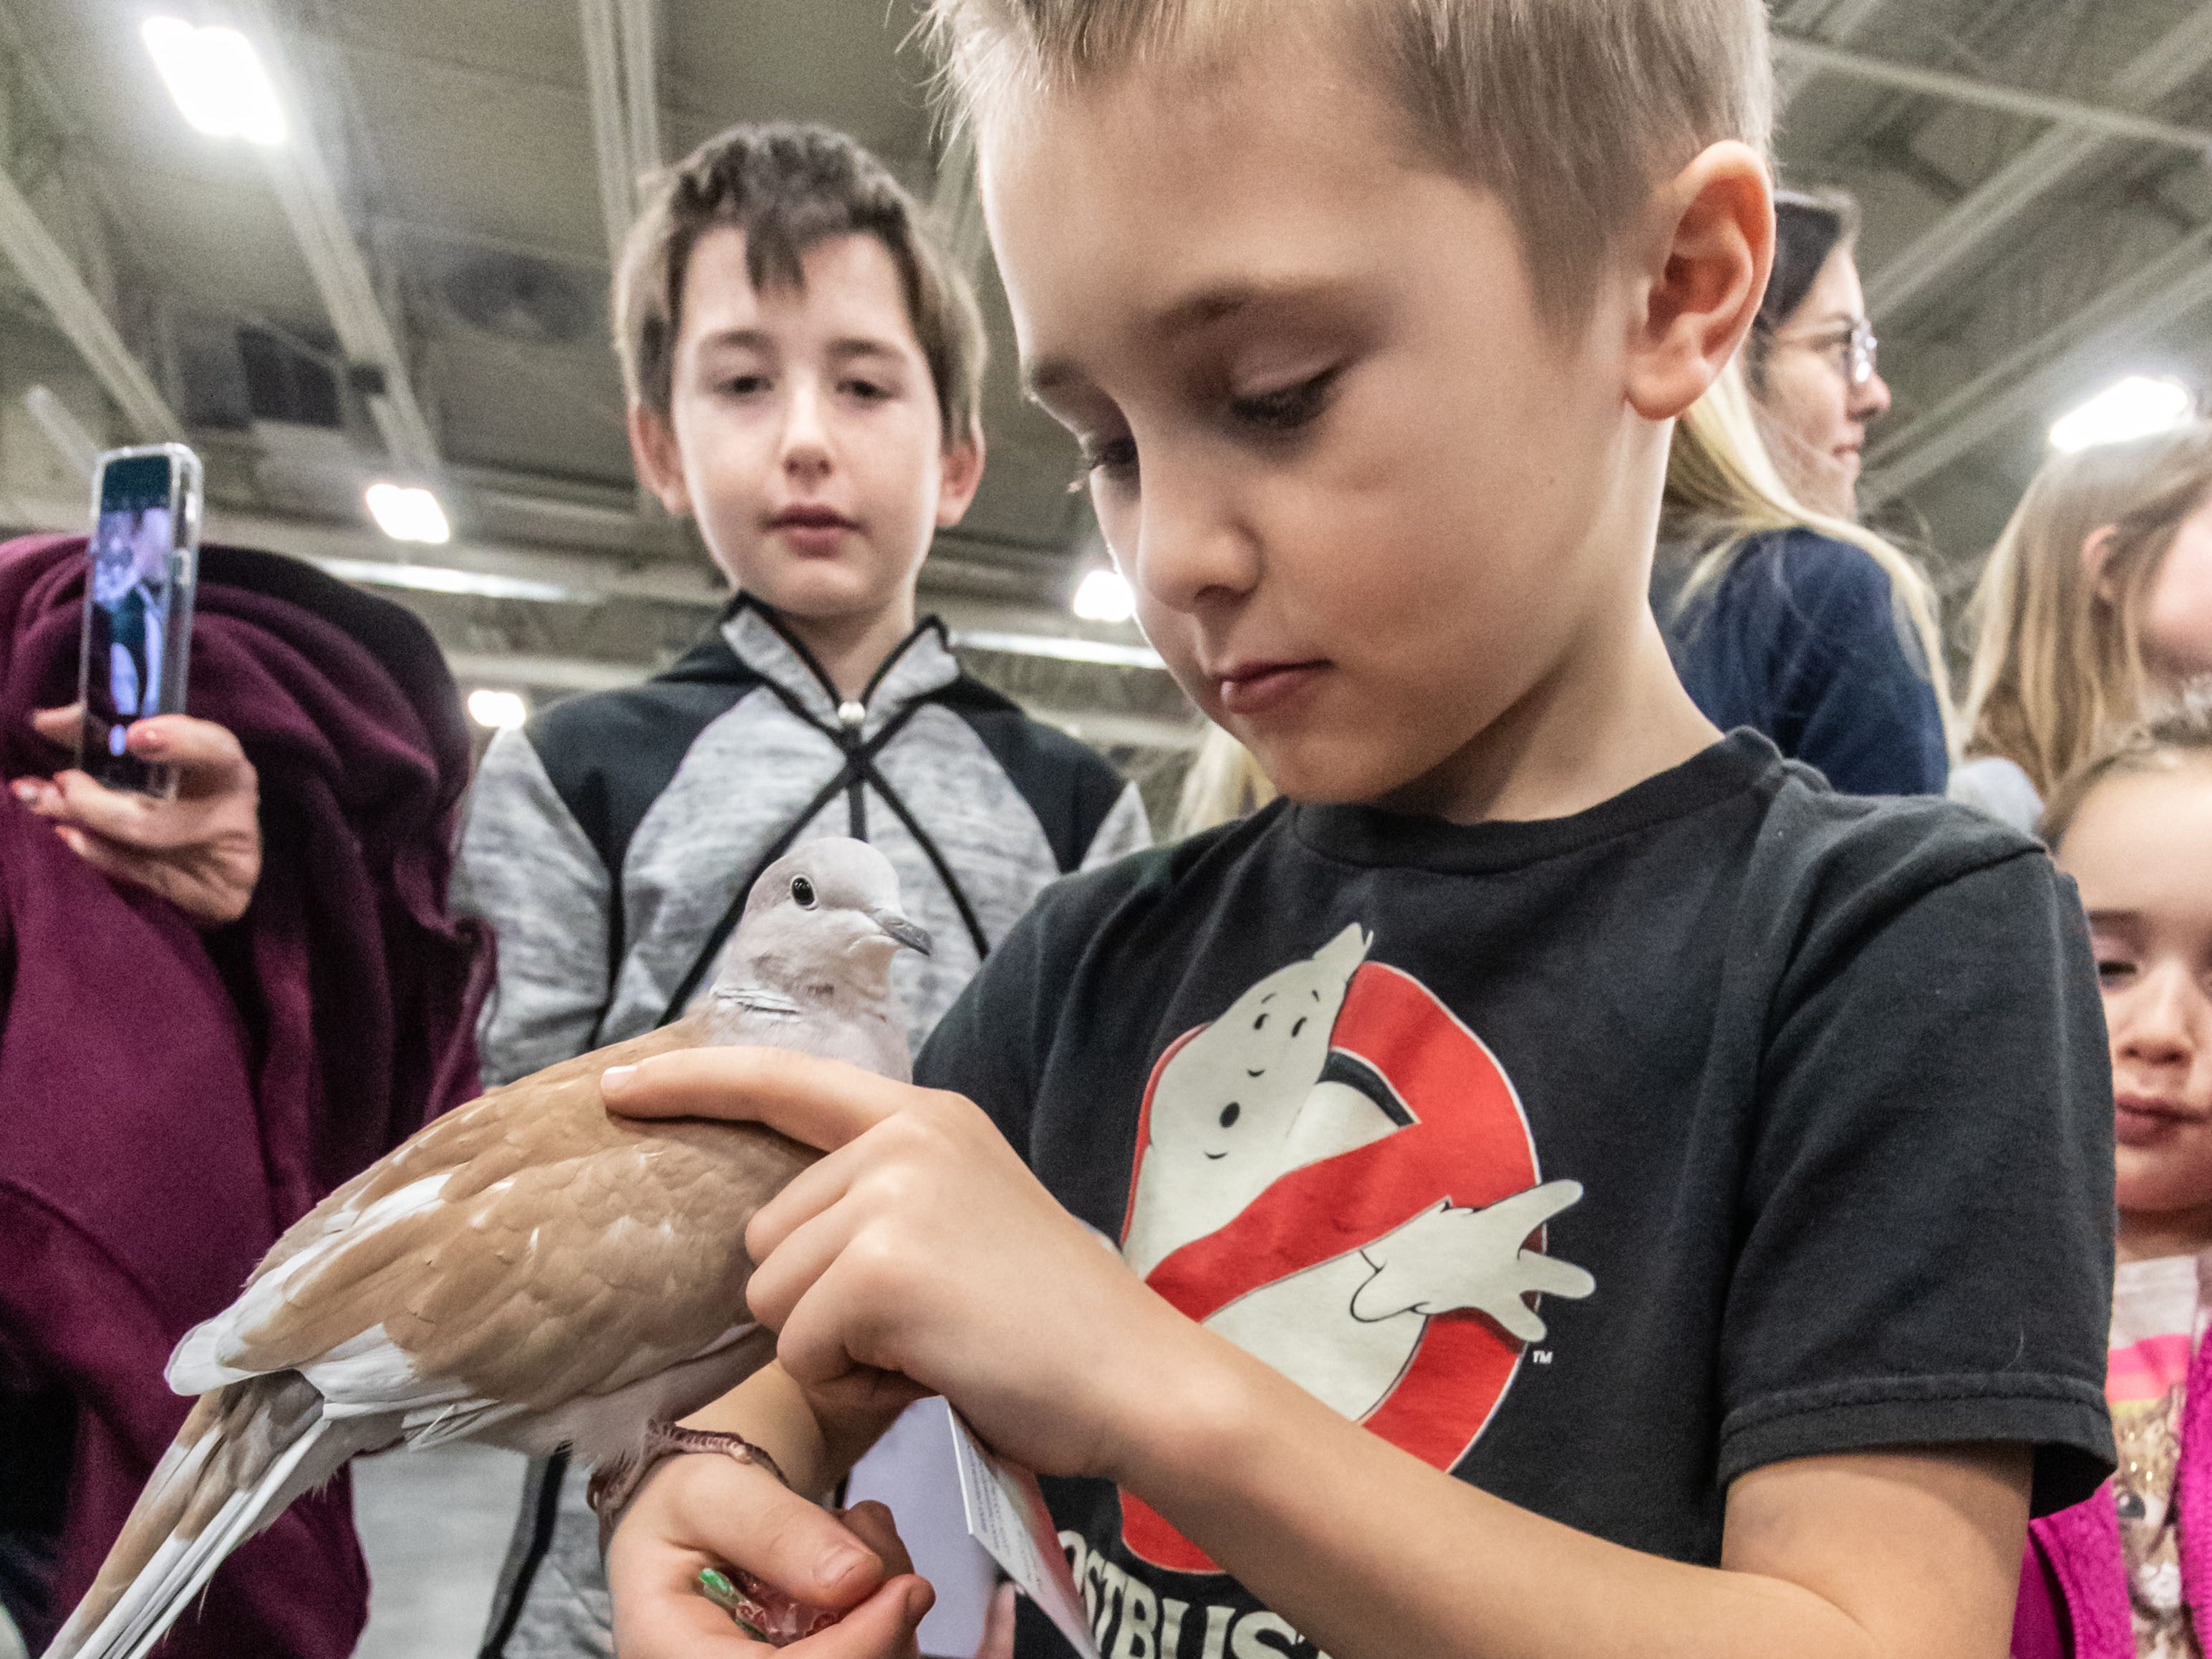 Bennett Hensley, 7, of Hartford, holds a dove from Waukesha's Center for Animal Rehab during the Great Lakes Pet Expo at State Fair Park on Saturday, Feb. 2, 2019. The non-profit event, celebrating its 15th anniversary, benefits Wisconsin animal rescues and shelters.